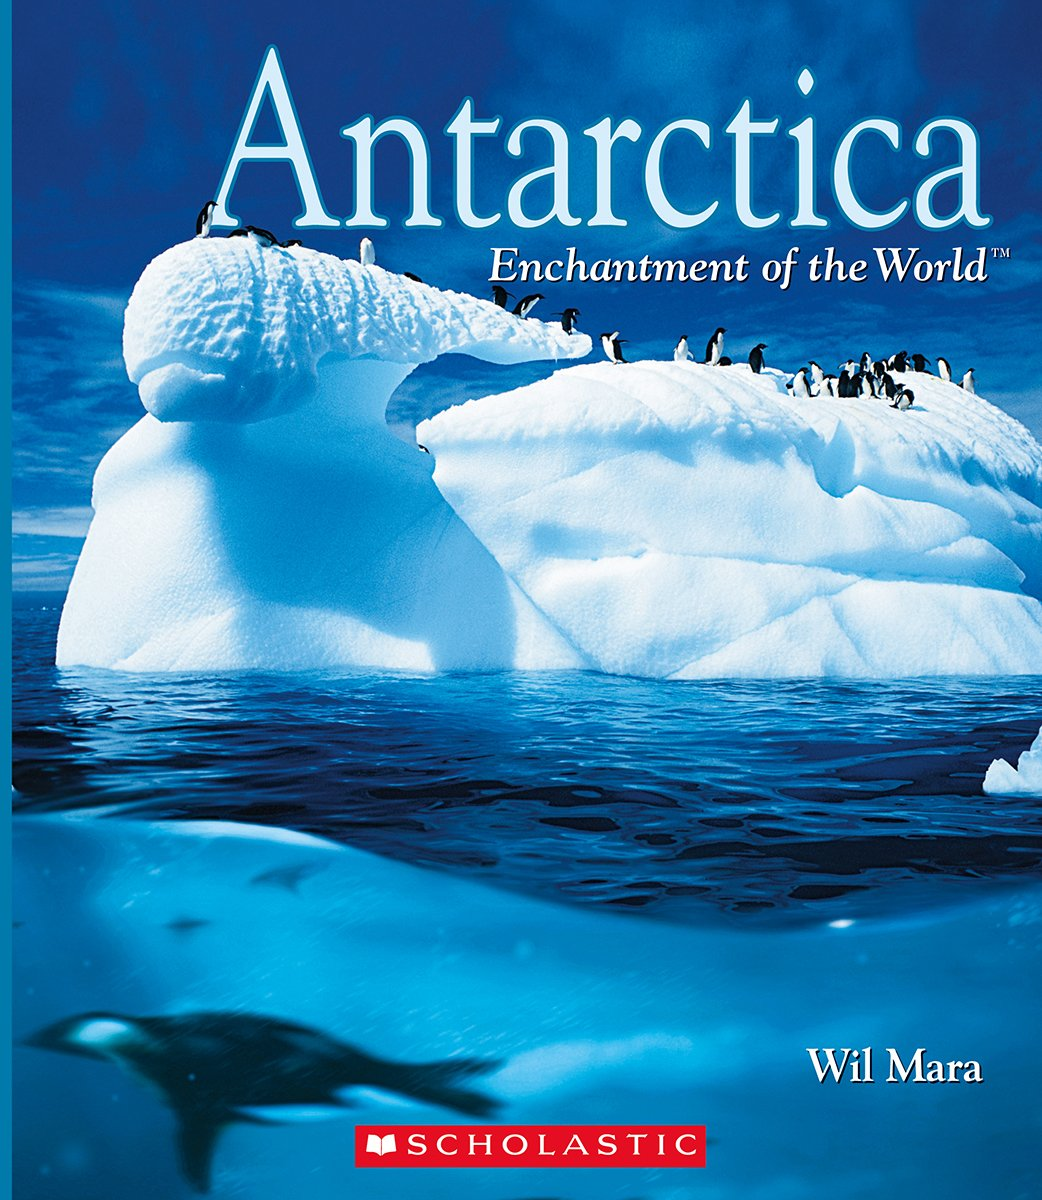 antarctica-enchantment-of-the-world-second